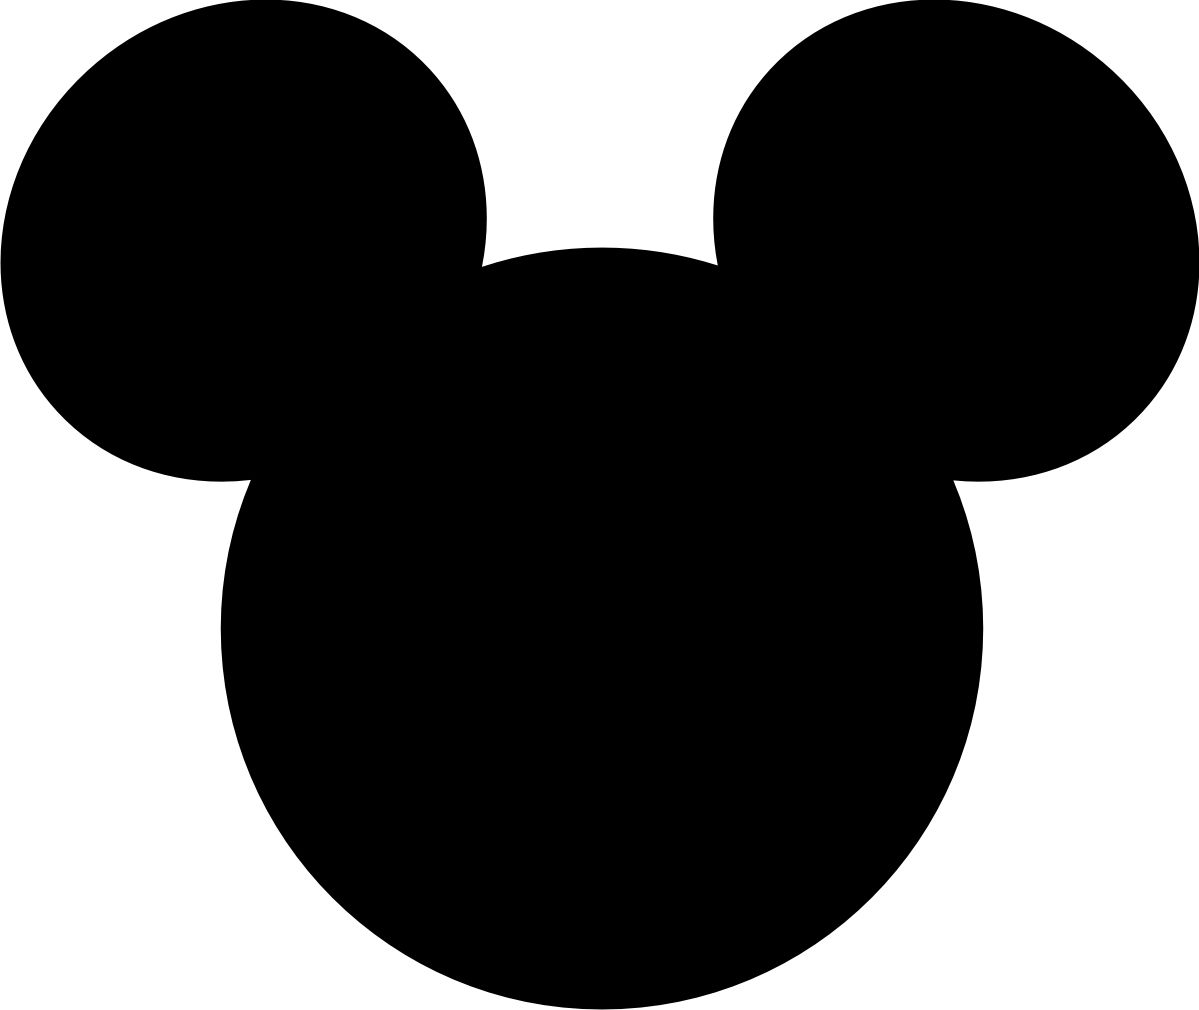 mickey mouse head vector free excel icon transparent download free clip art free mickey head vector mouse